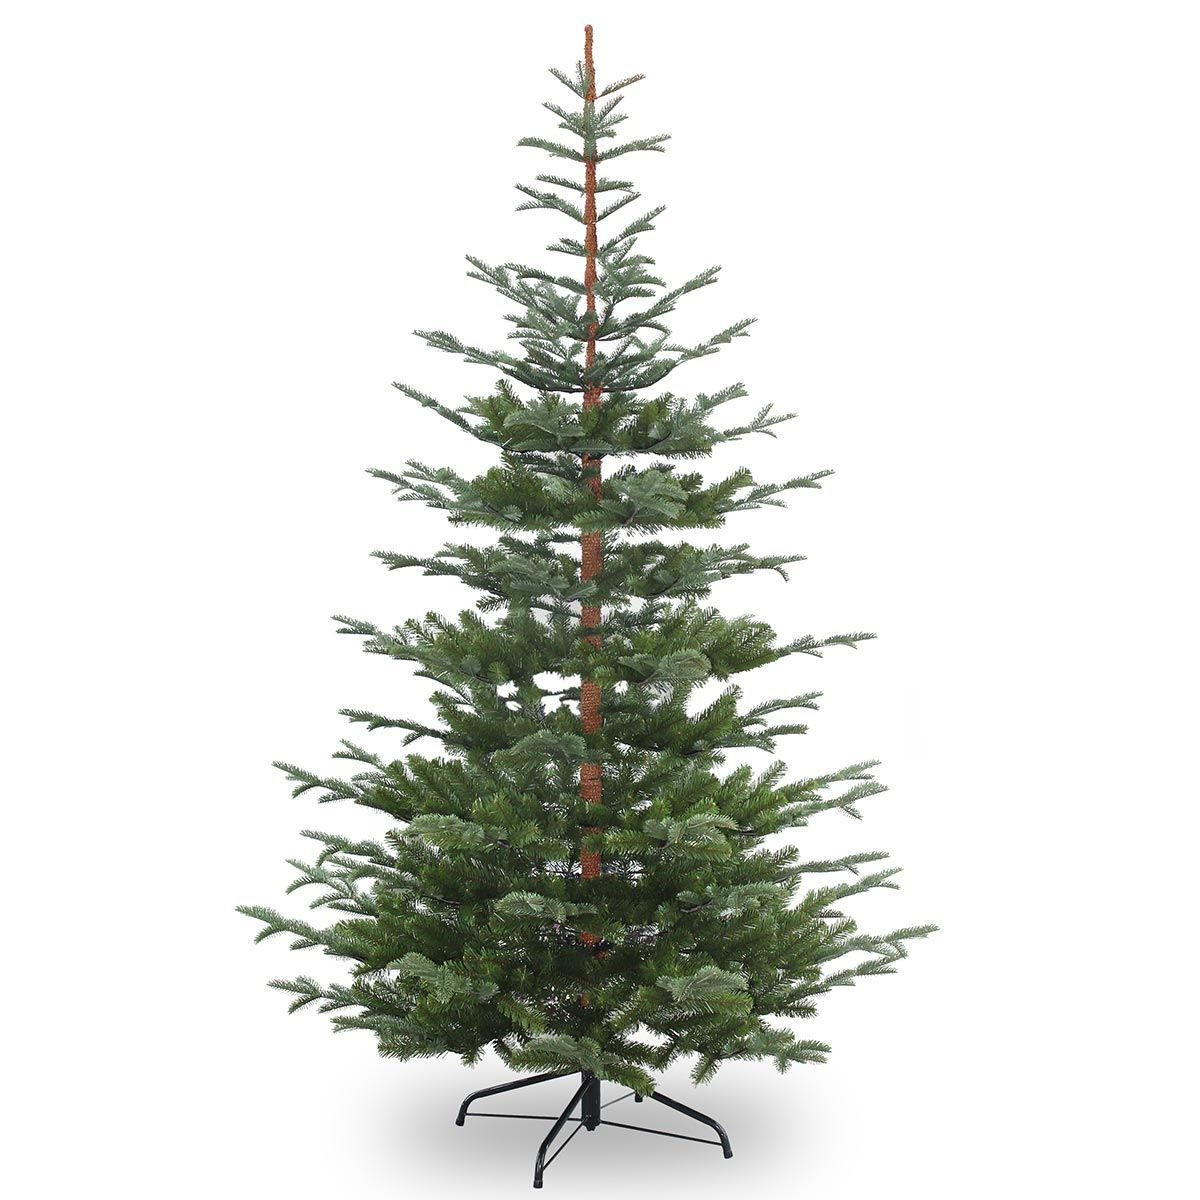 6ft nobleman spruce feel real artificial christmas tree - Artificial Christmas Trees